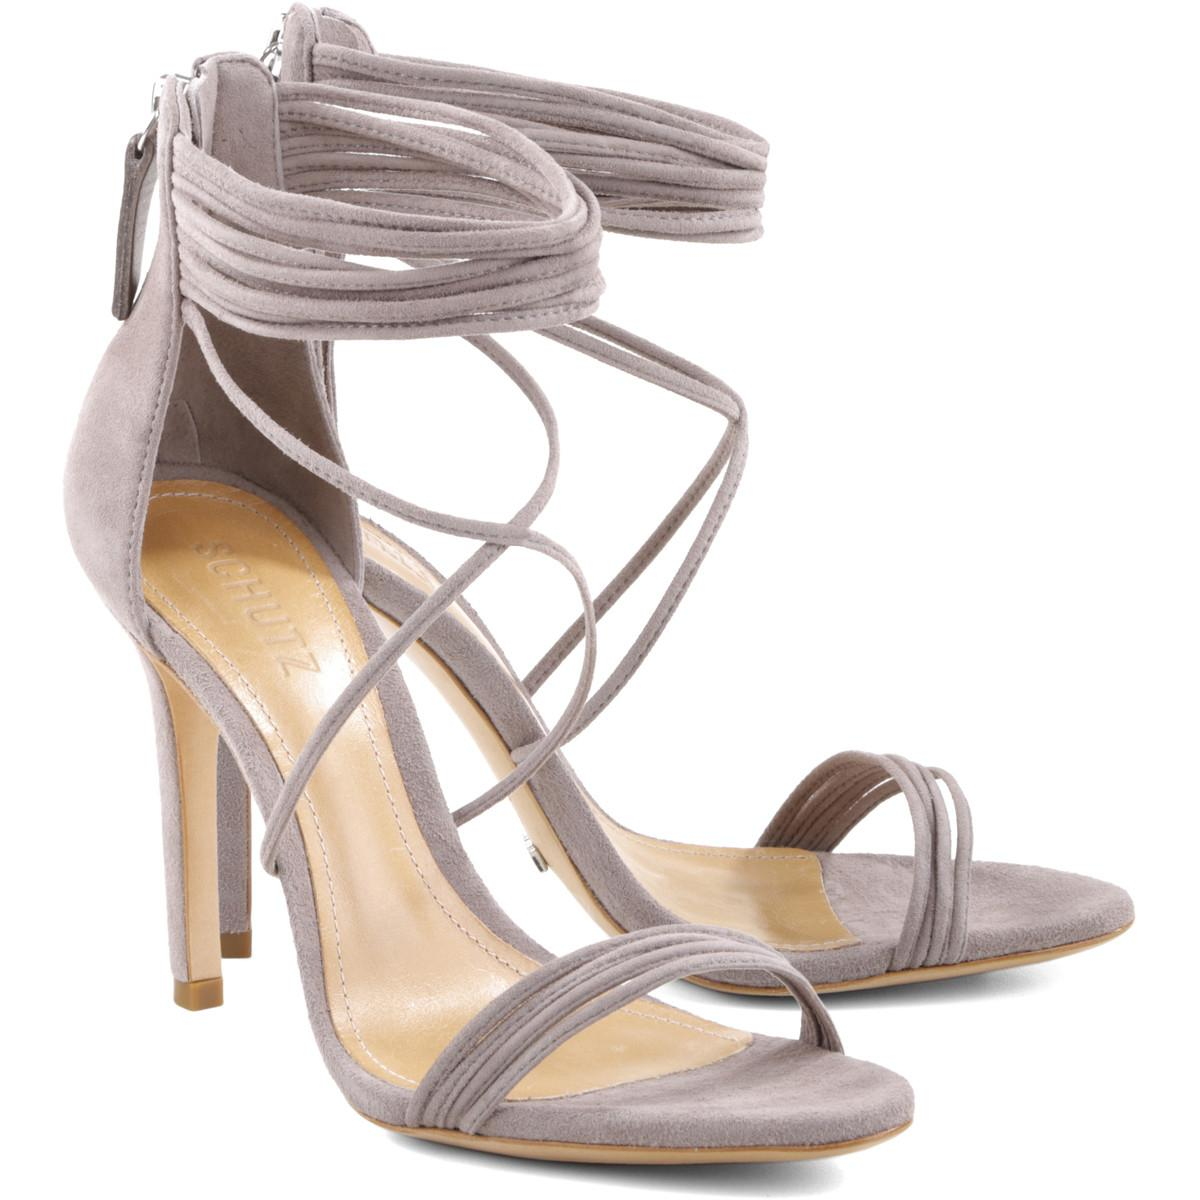 Schutz Women's Amandita High Mouse Taupe Multiple Strappy High Amandita Heel Sandal Pumps (9) 382f29